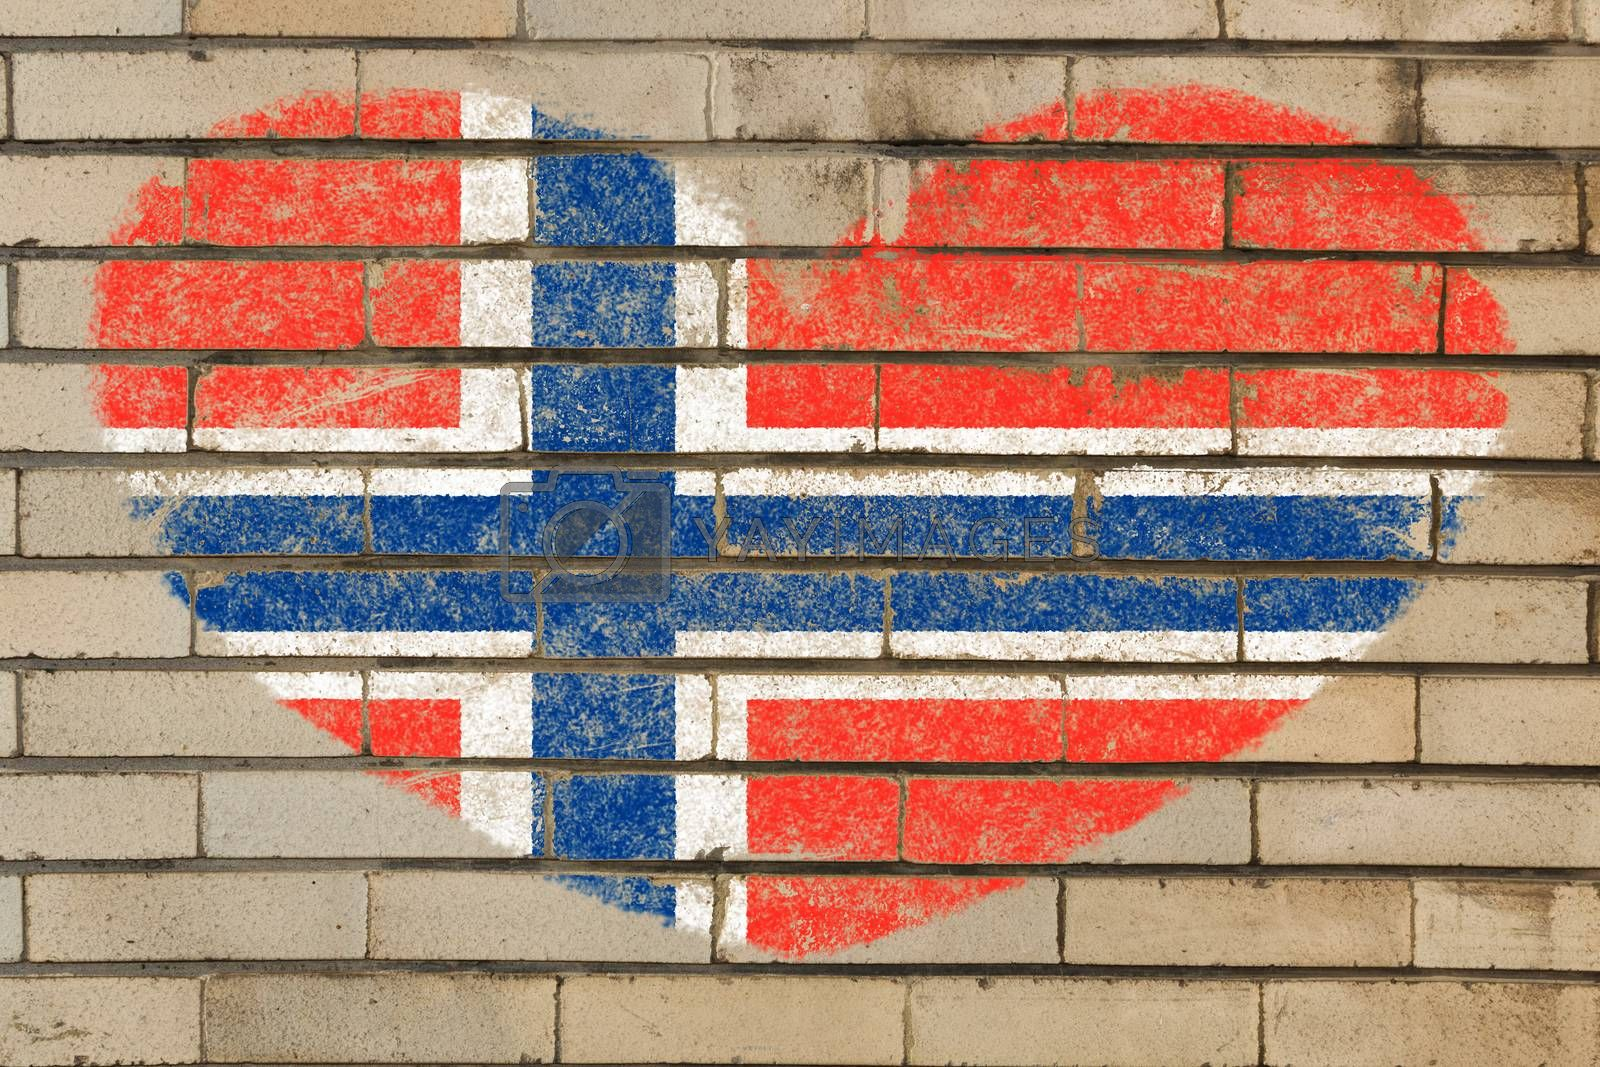 heart shaped flag in colors of norway on brick wall